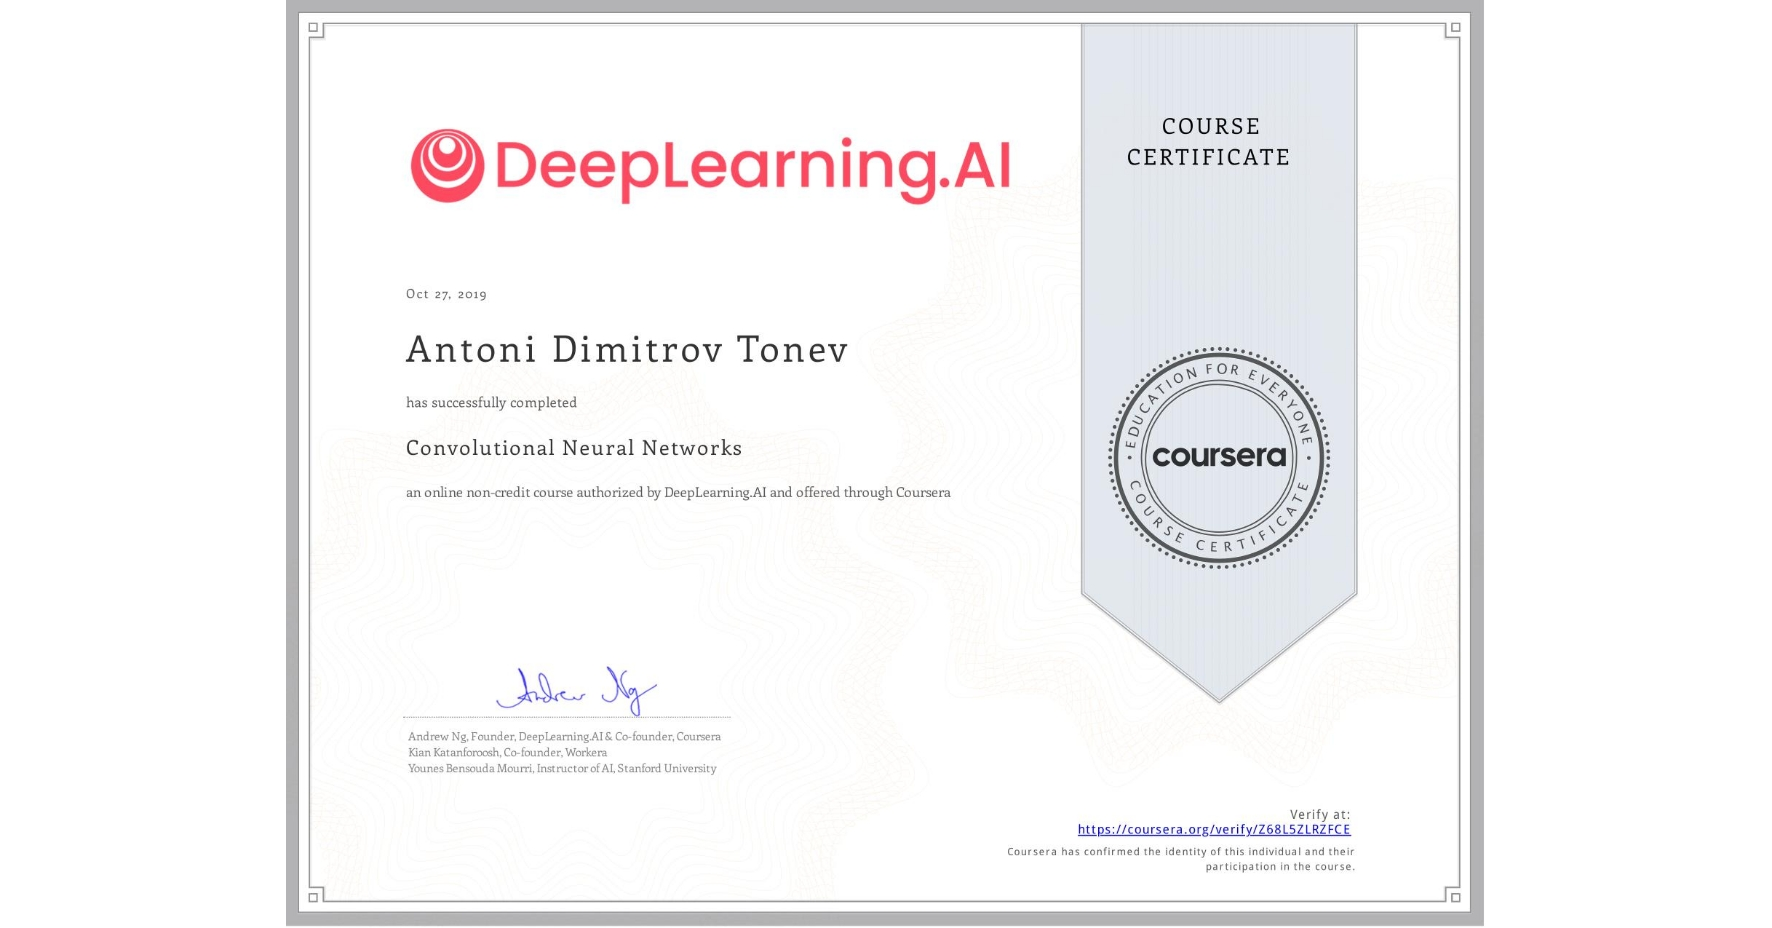 View certificate for Antoni Dimitrov Tonev, Convolutional Neural Networks, an online non-credit course authorized by DeepLearning.AI and offered through Coursera